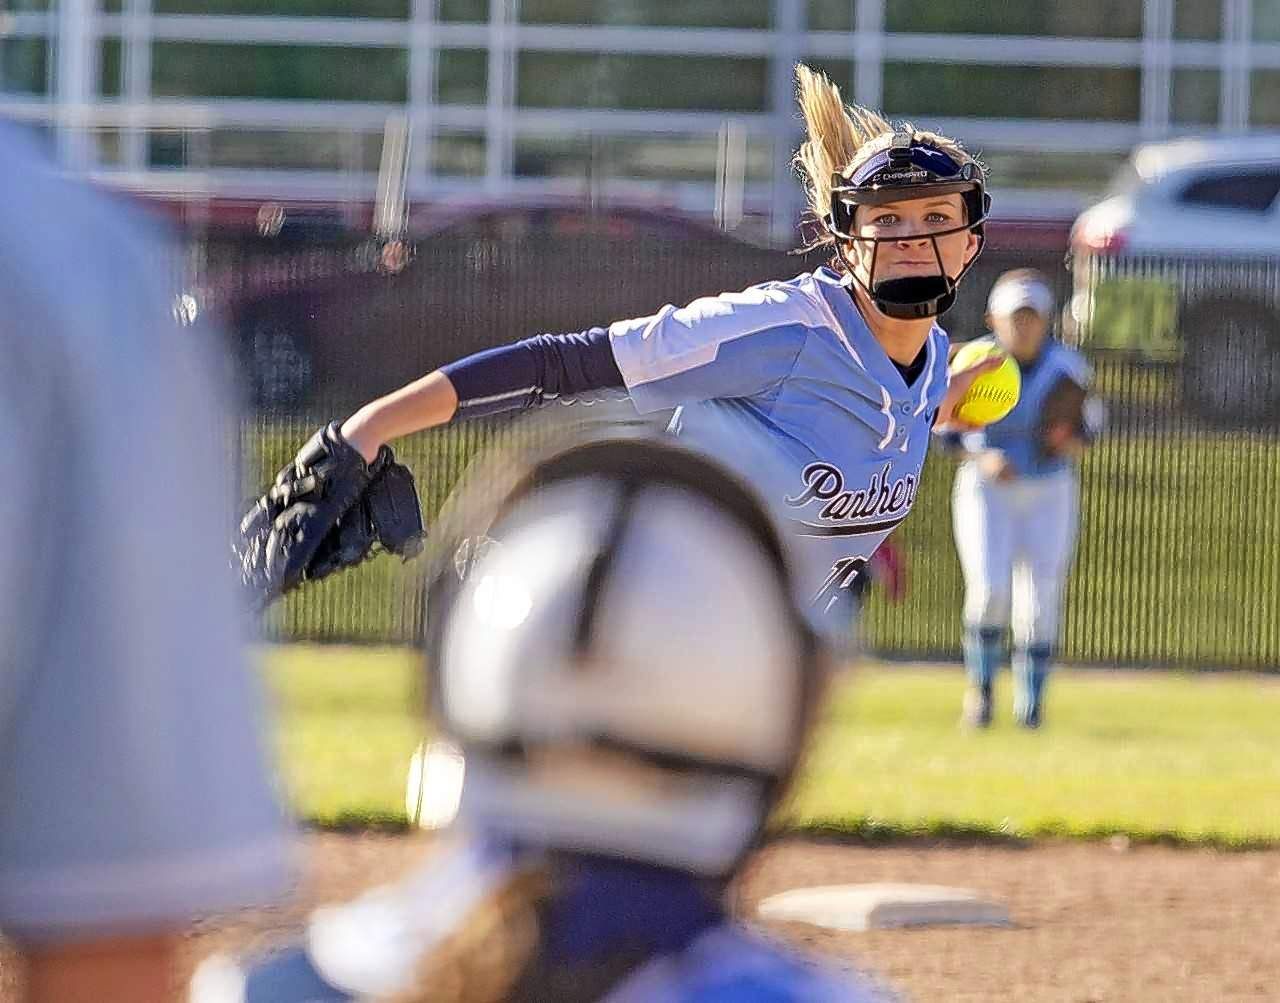 Lady Panthers pitcher Taylor Witges winds up against Du Quoin on Monday.